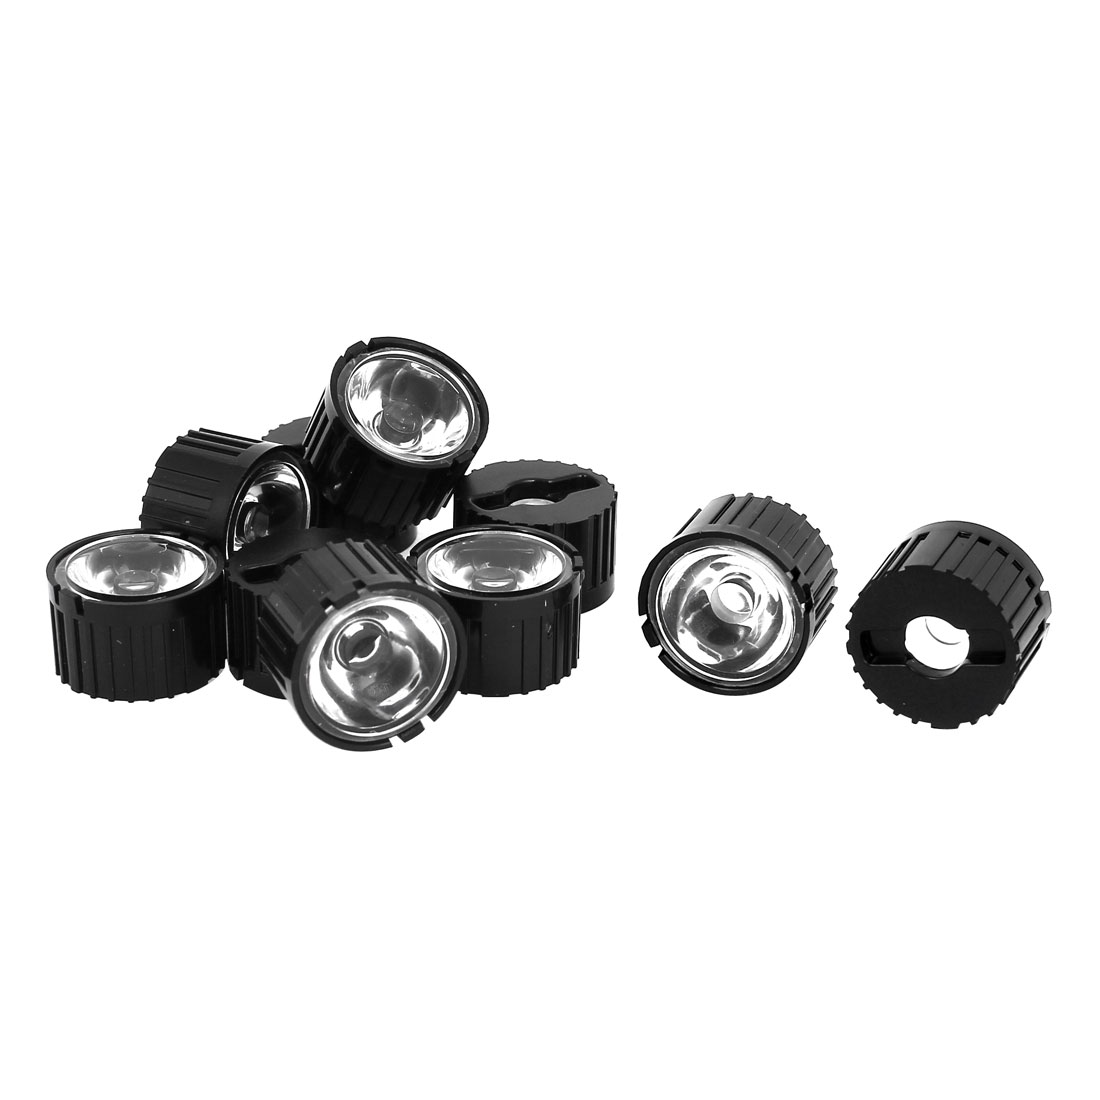 10 Pcs 60 Degree Wide Angle Condenser Light LED Optical Lens w Black Holder